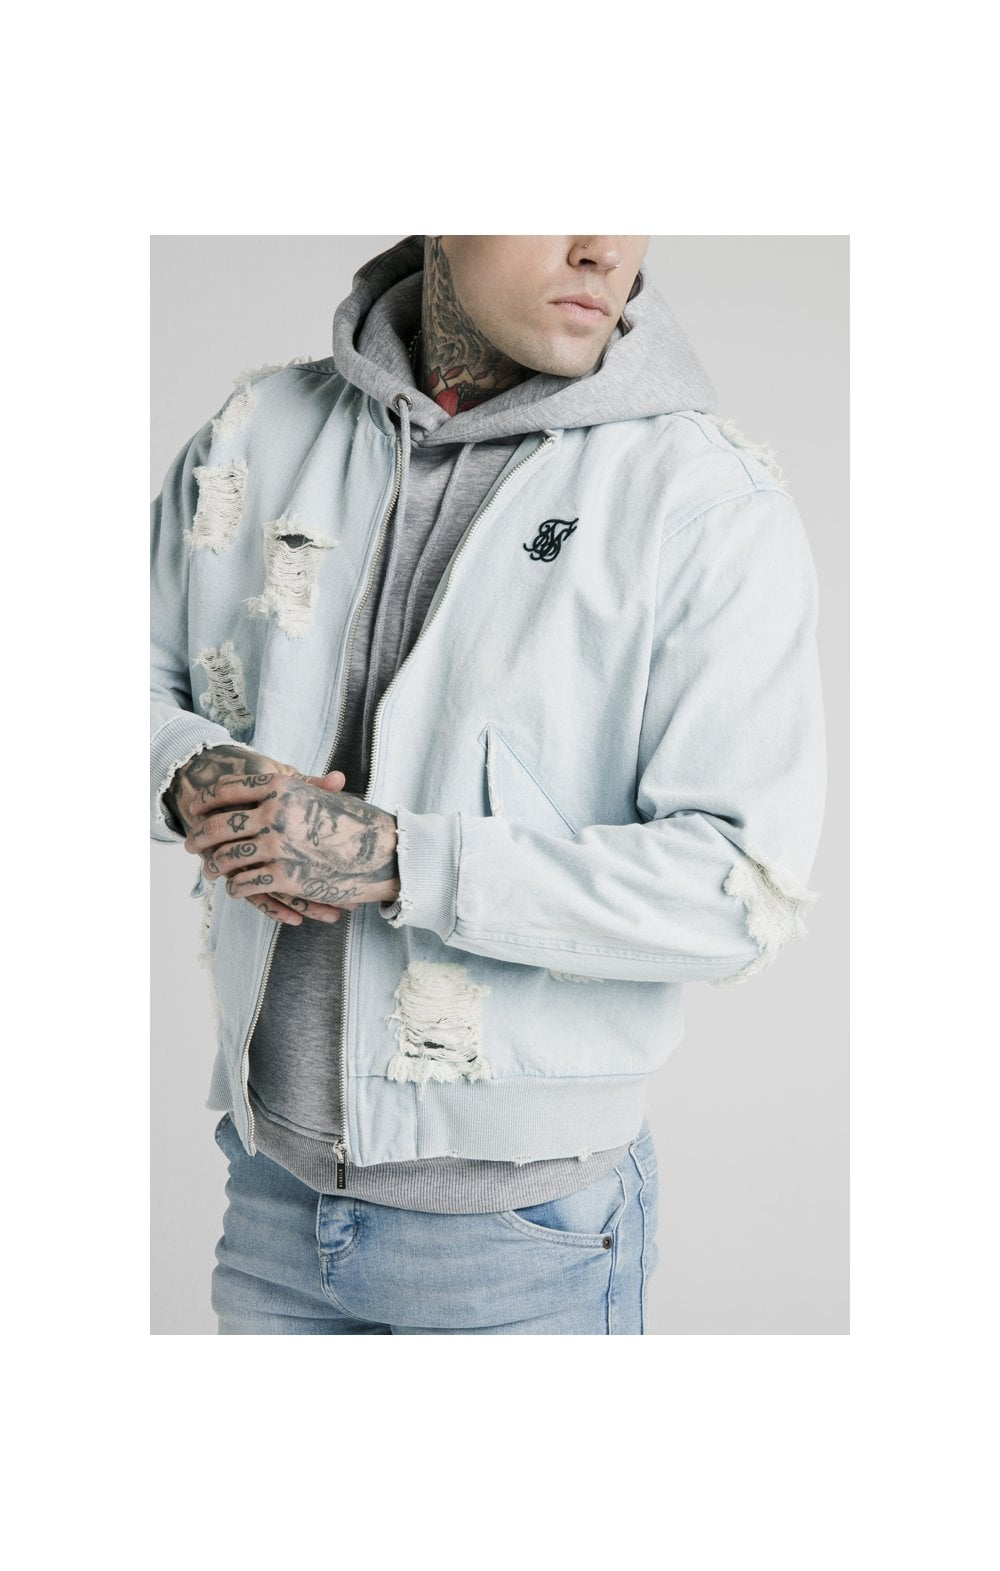 SikSilk Distressed Denim Bomber Jacket - Light Blue